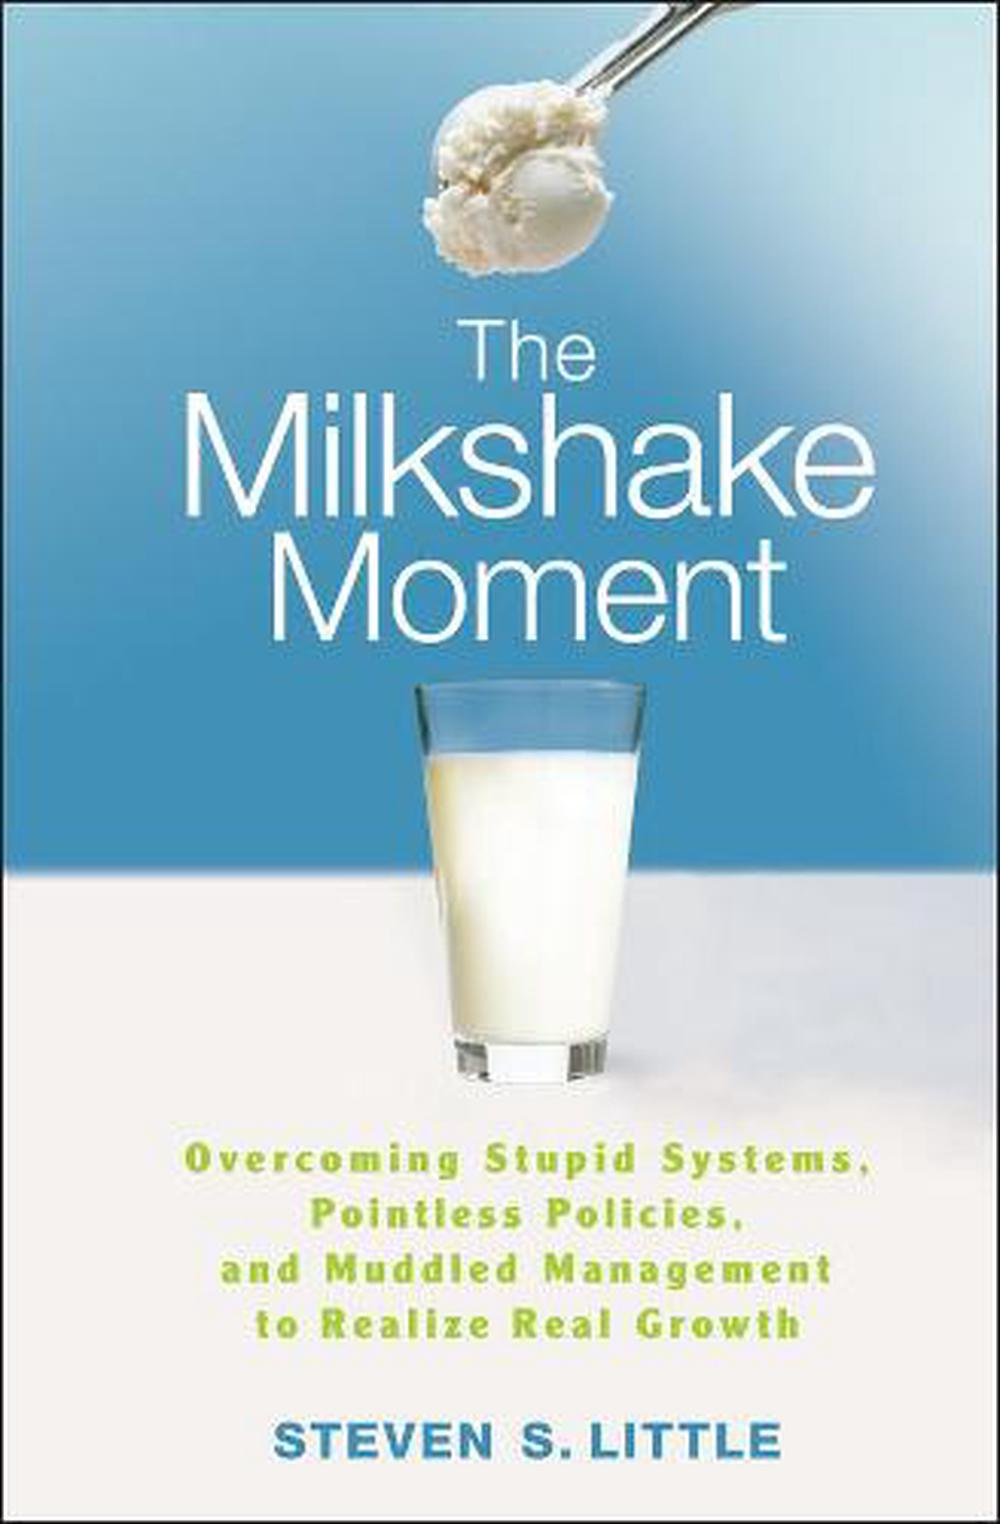 The Milkshake Moment: Overcoming Stupid Systems, Pointless Policies, and Muddled Management to Realize Real Growth